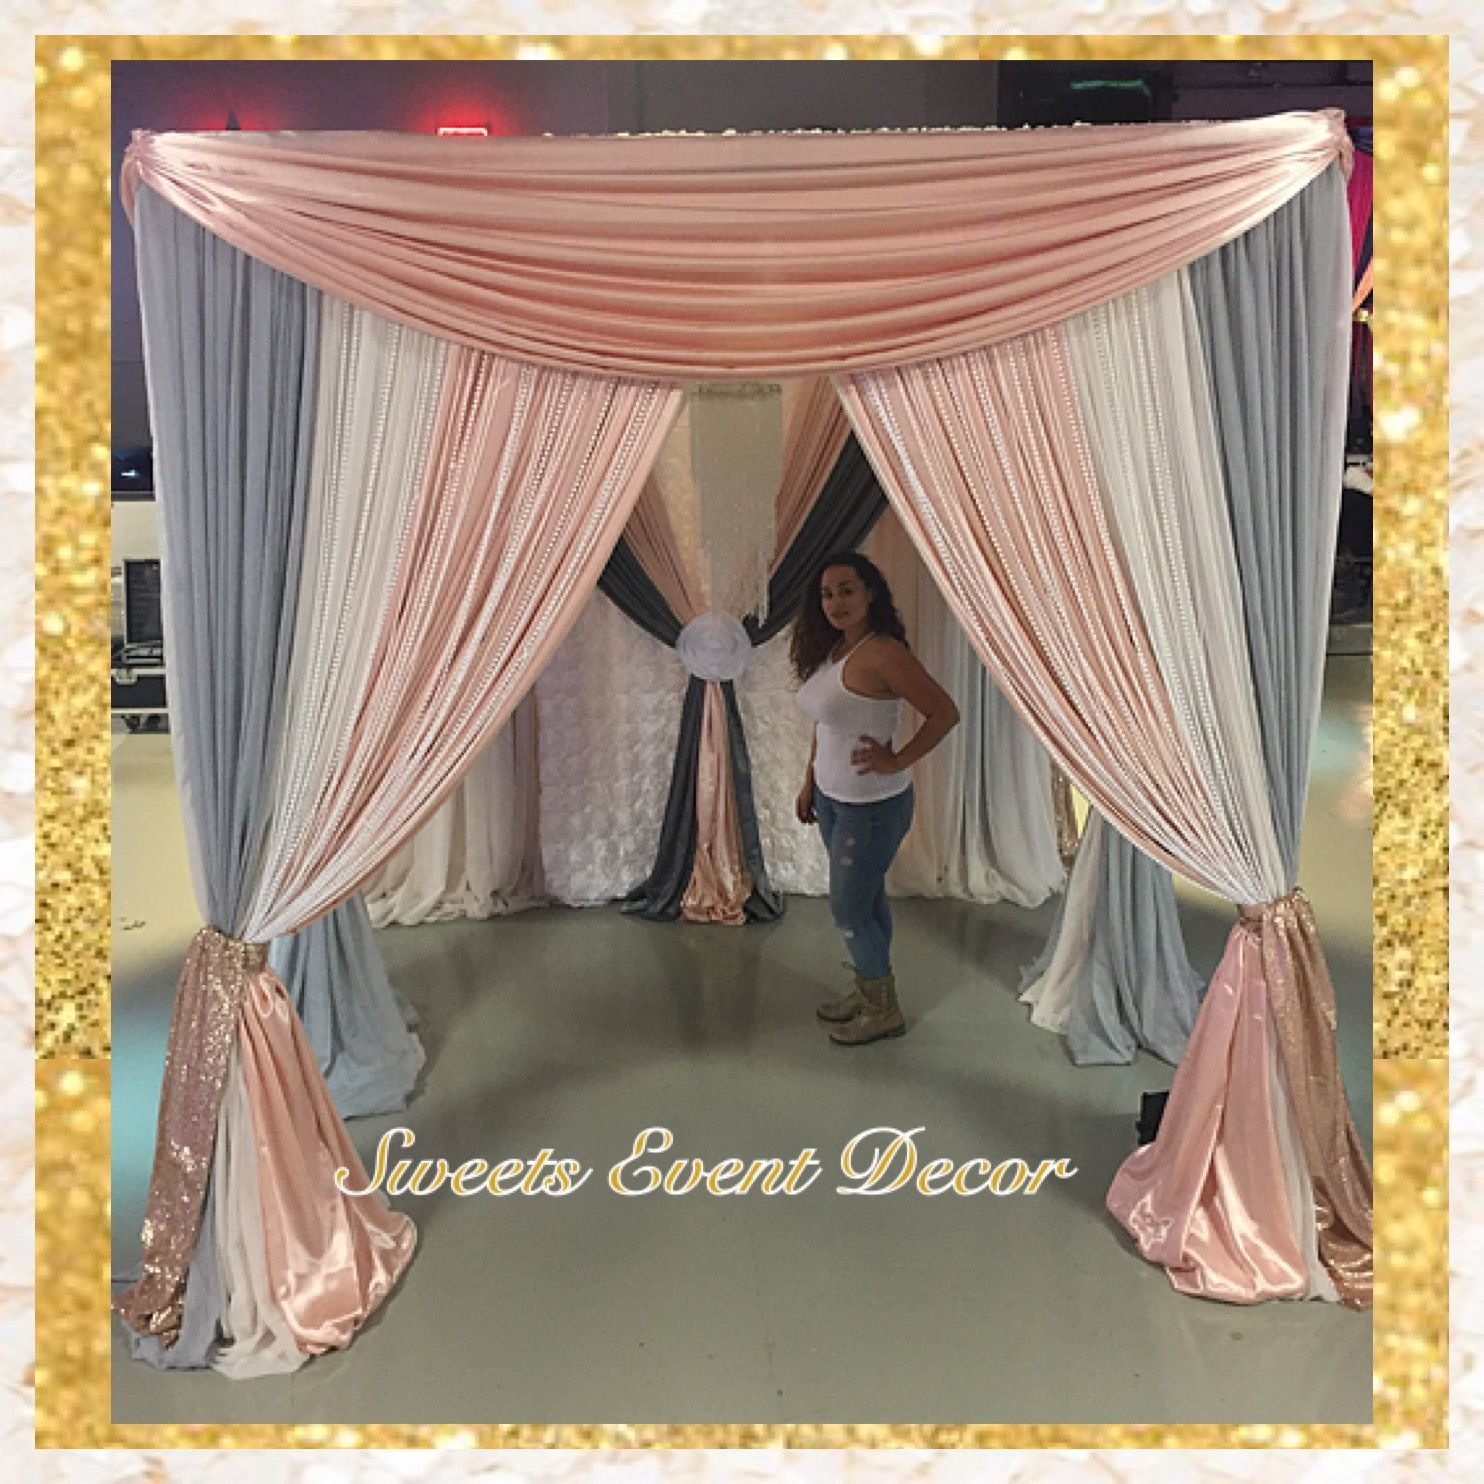 Wedding Canopy Decor By Sweets Event Decor Tent Draping Fabric Draping Fabric Ba Wedding Canopy Decorations Wedding Draping Decor Wedding Draping Fabric